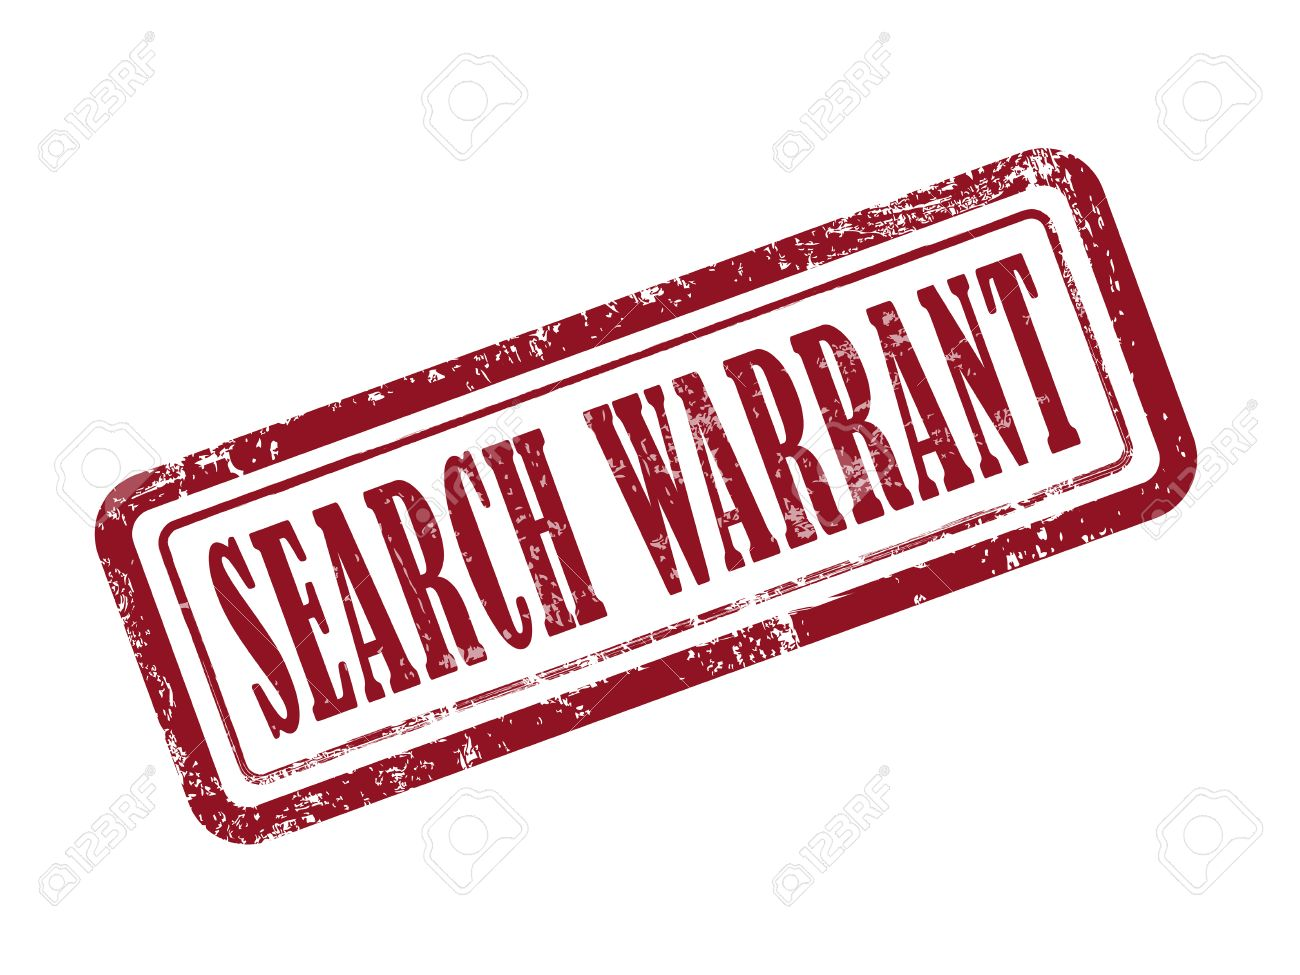 stamp search warrant in red over white background